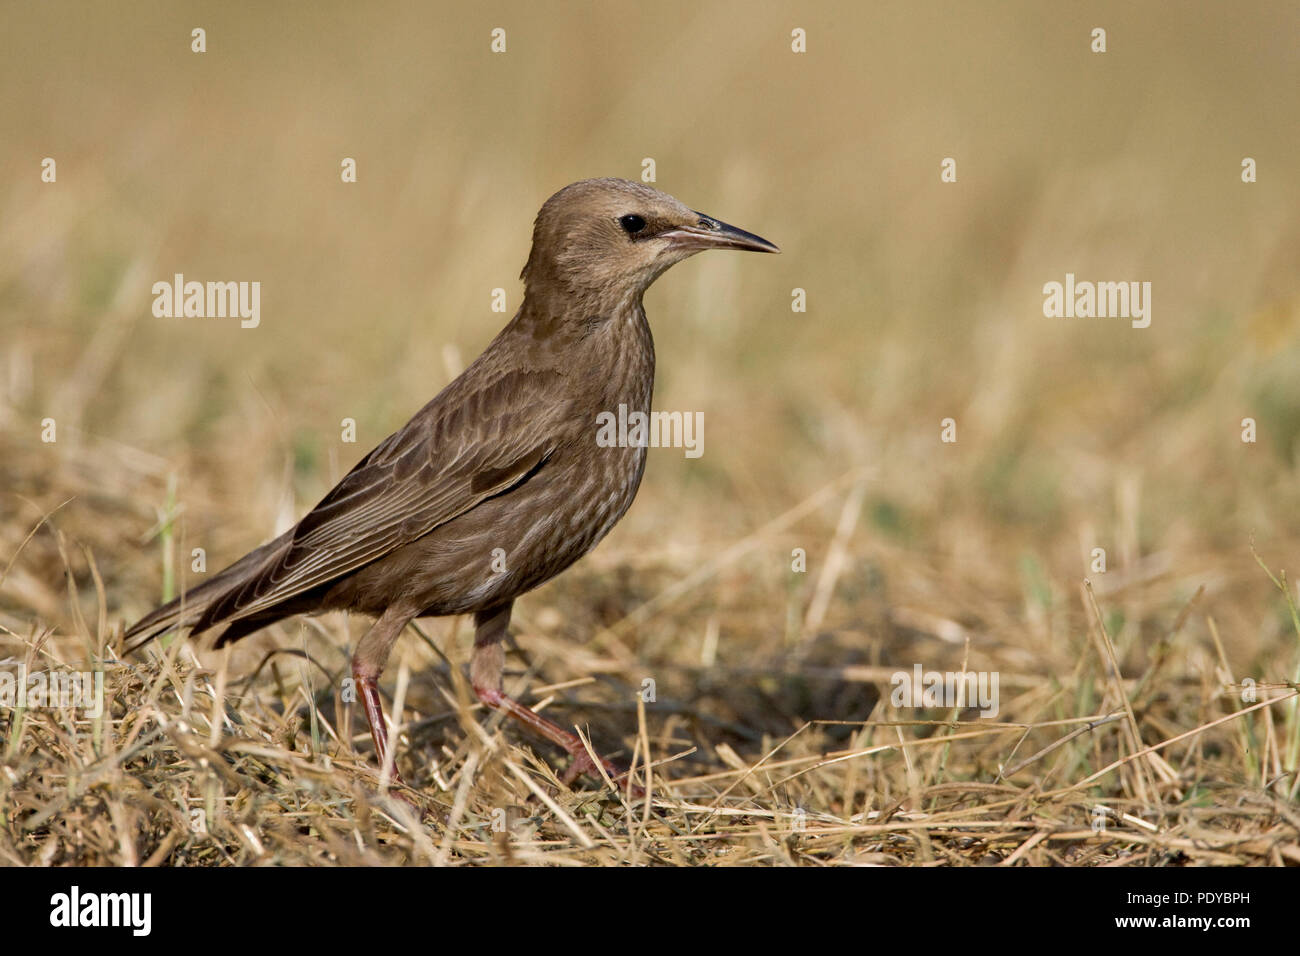 Common Starling sitting between shriveled grass. - Stock Image